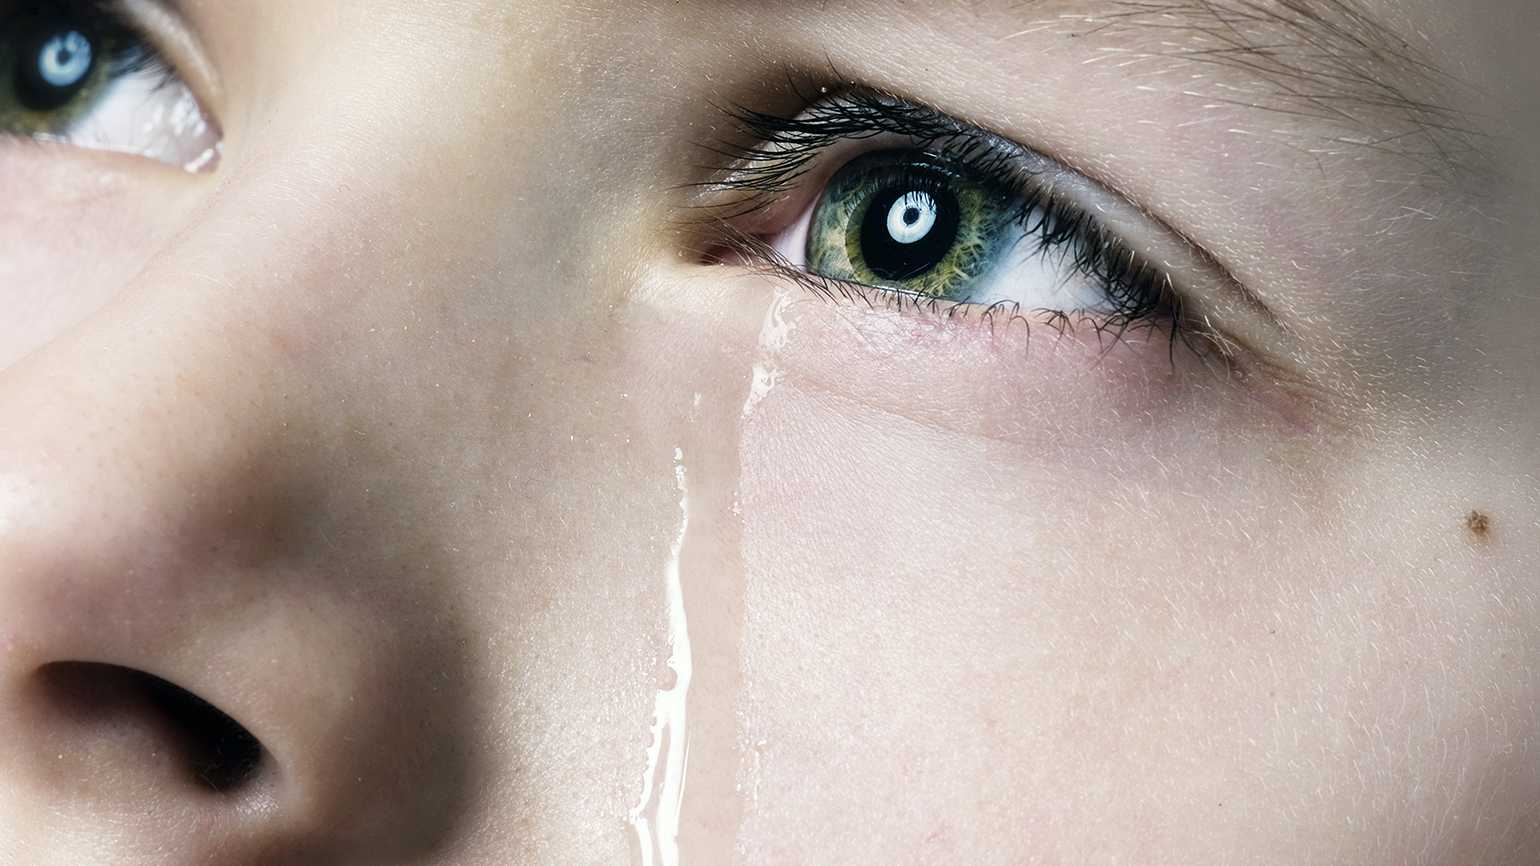 A young child sheds a tear